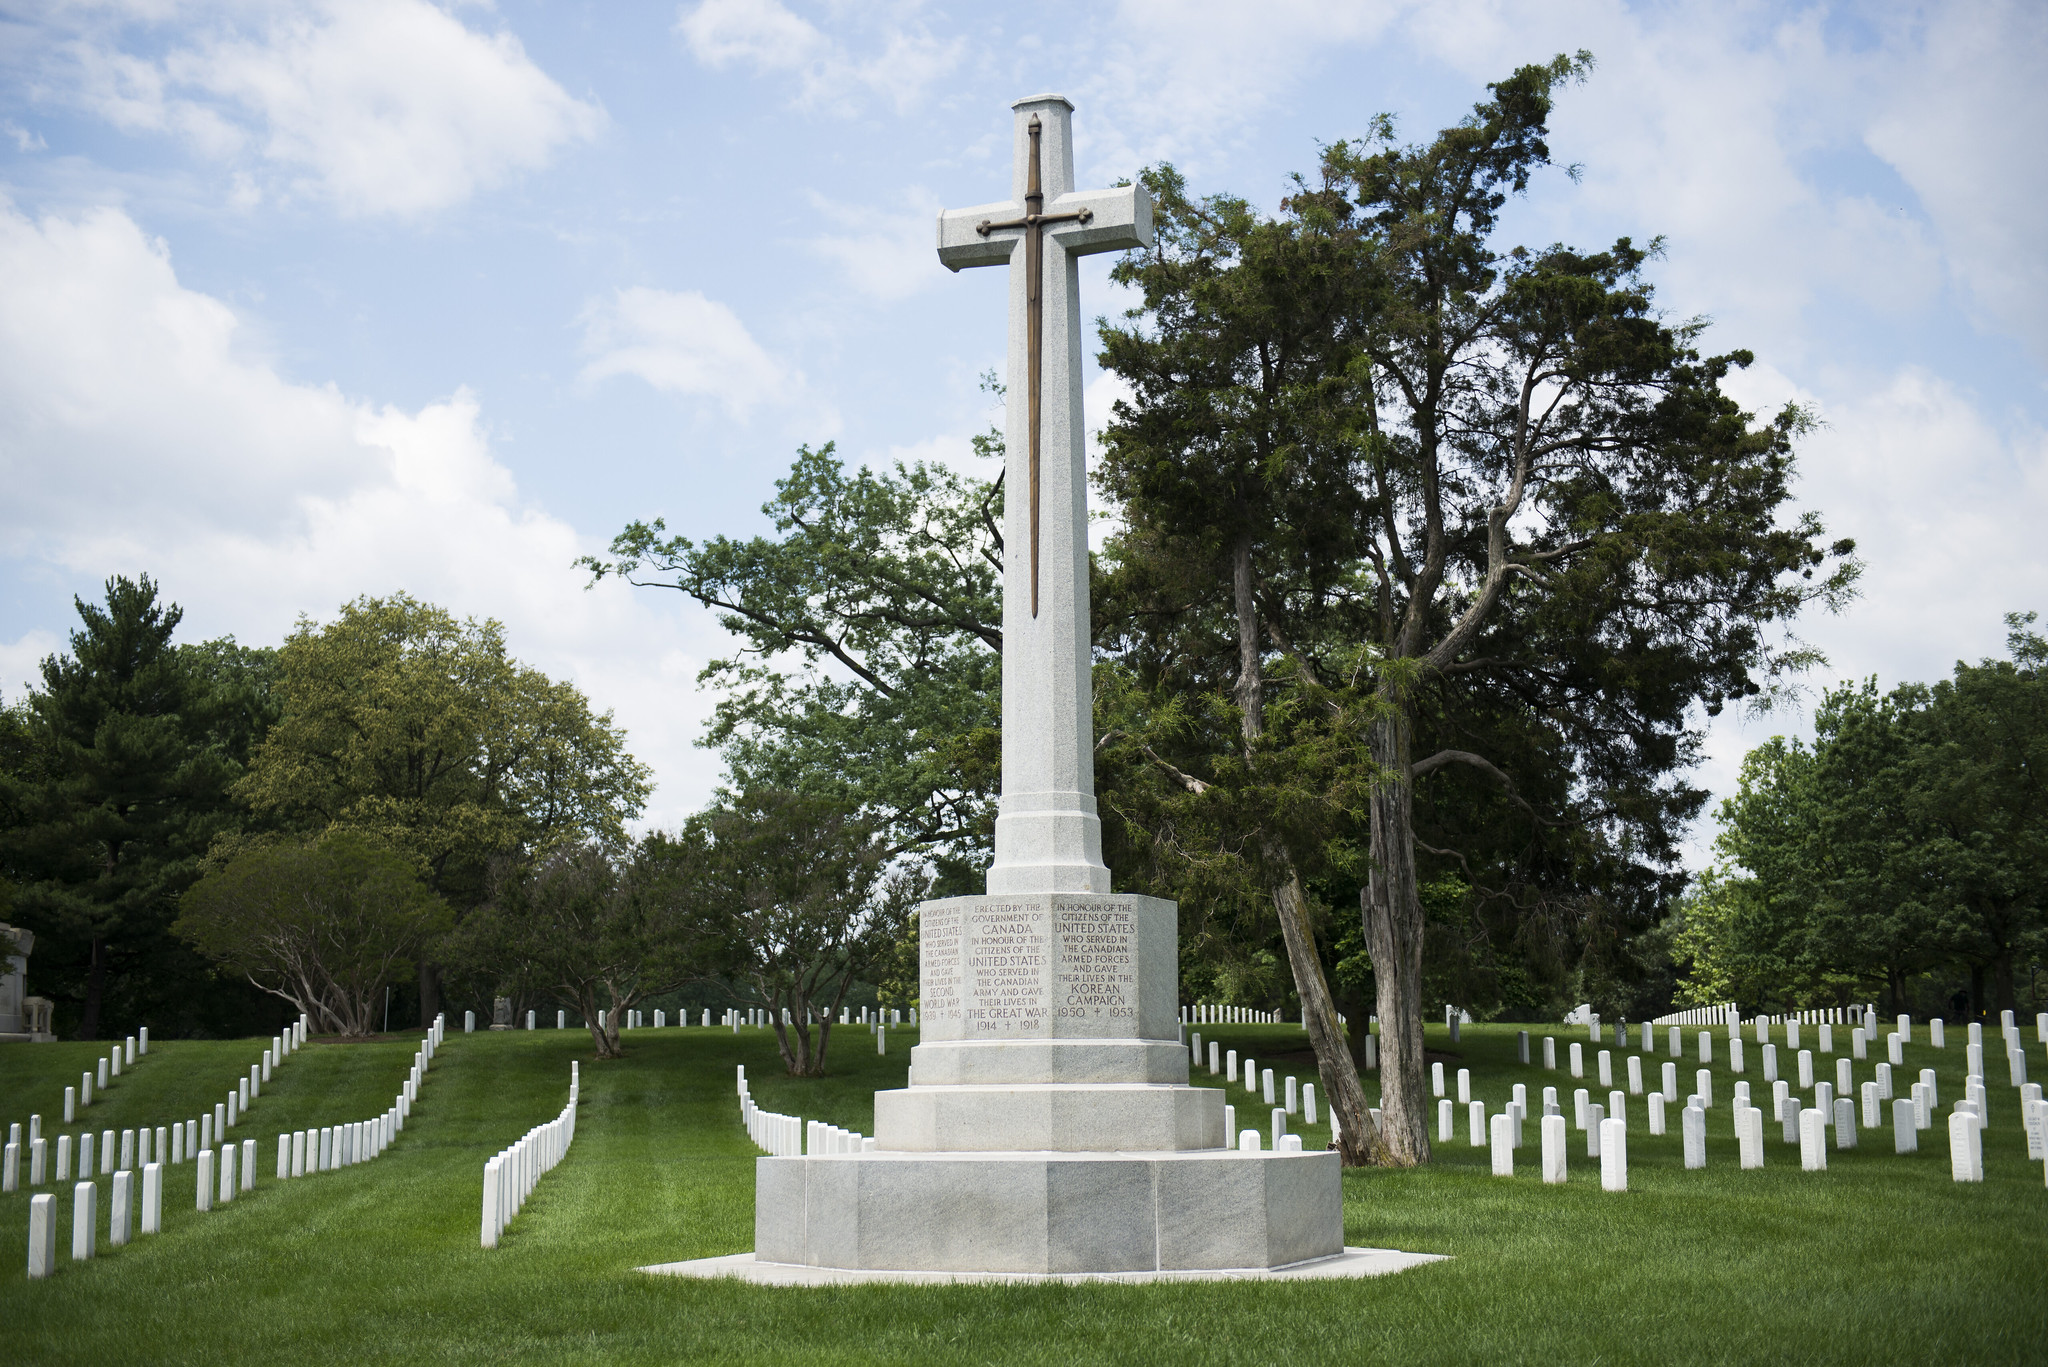 The Canadian Cross of Sacrifice memorial, whose inscription reads, Erected by the government of Canada in honour of the citizens of the United States who served in the Canadian Army and gave their lives in the Great War, 1914-1918